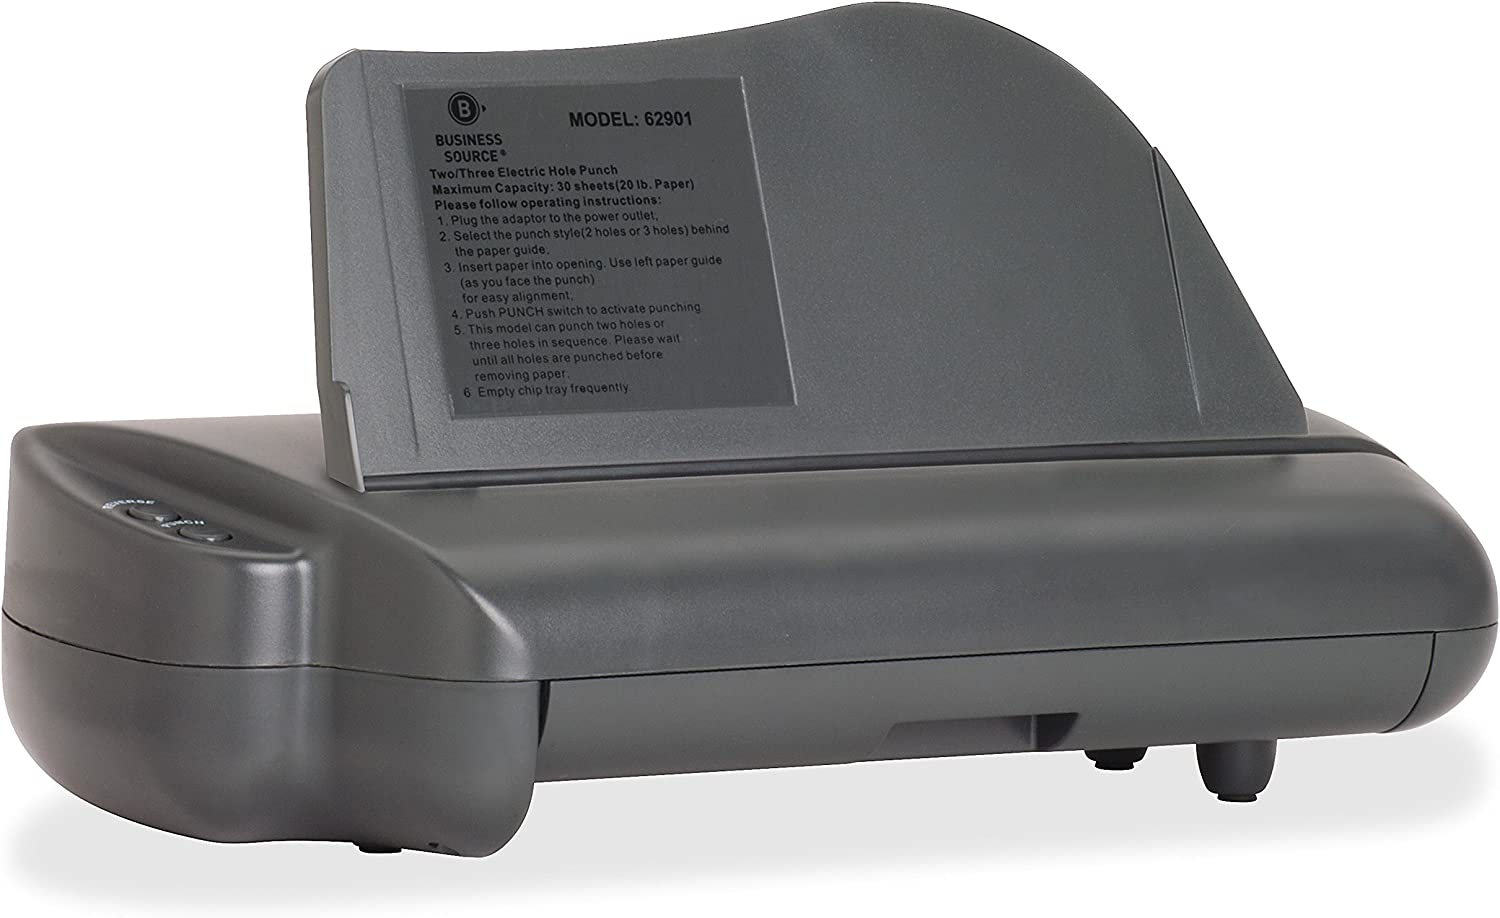 Business Source Desktop Hole Punches Powered Multi-Hole Paper Punch (62901)